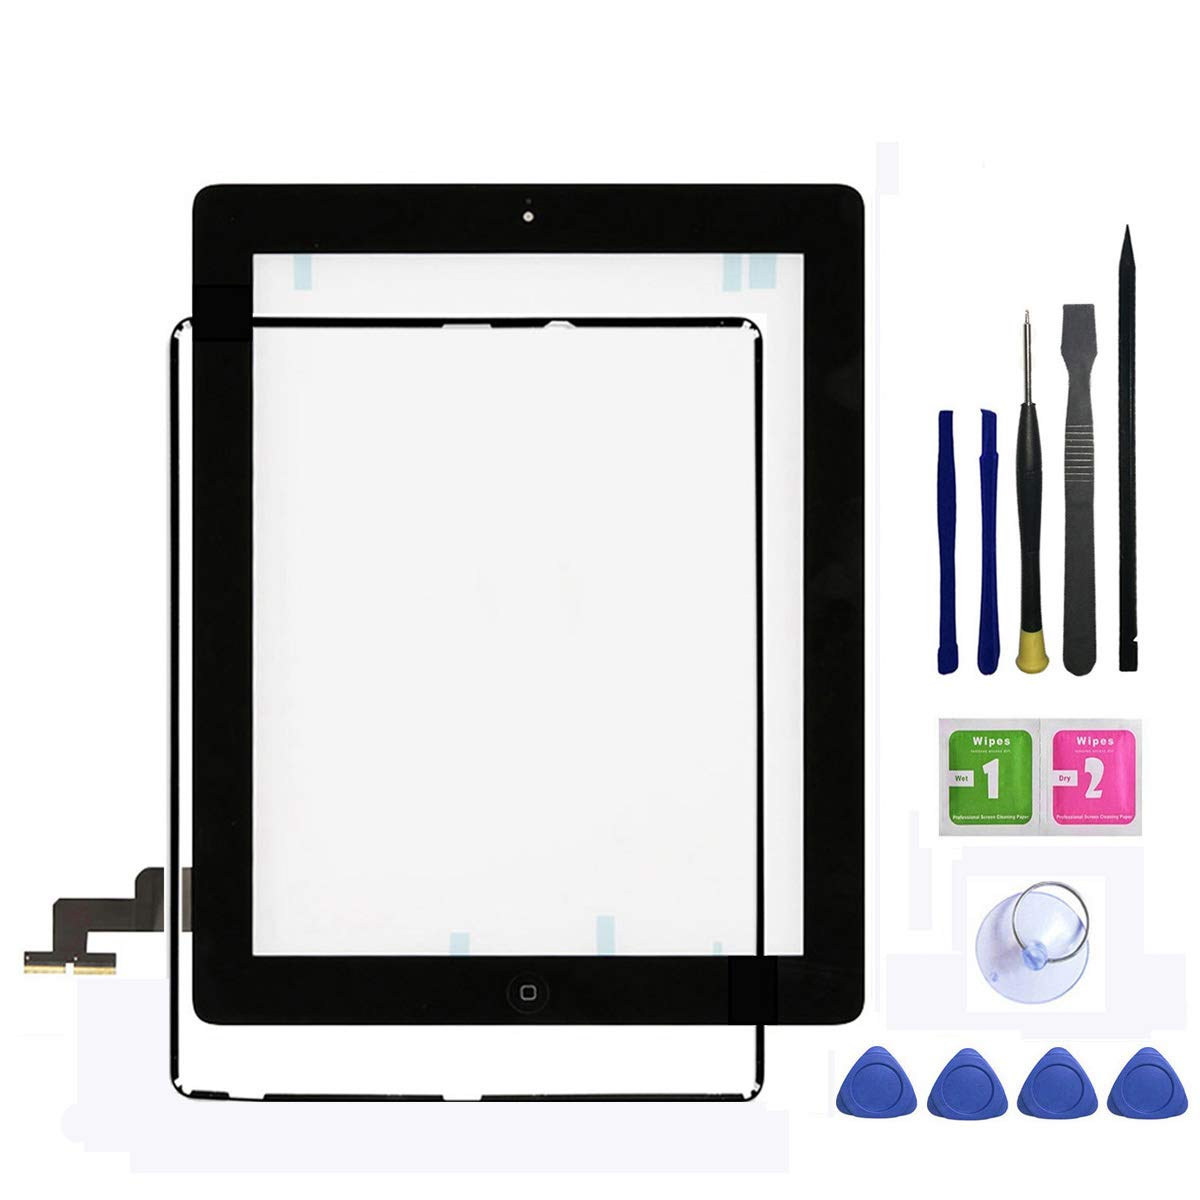 IPad 2 Screen Replacement,FeiyueTech New Black iPad 2 Digitizer Touch Screen Front Glass Assembly - Includes Home Button + Camera Holder +Frame Bezel+ PreInstalled Adhesive with Tools kit